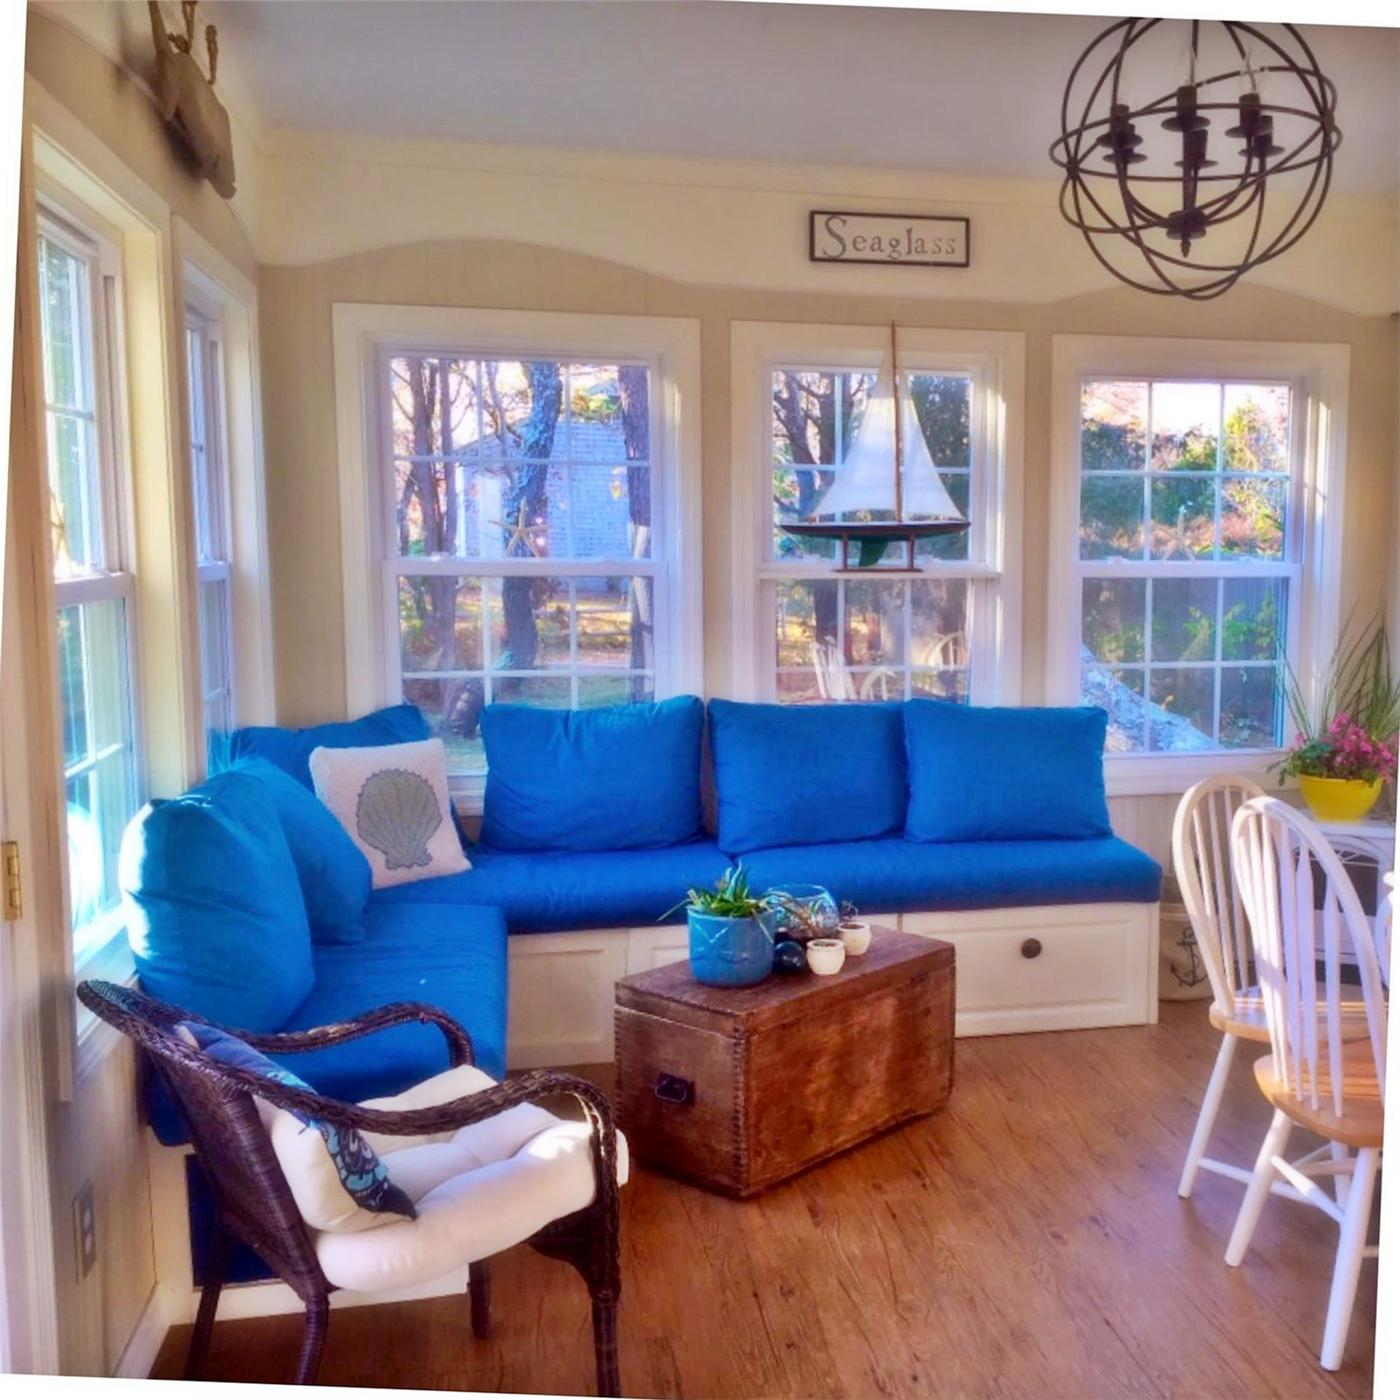 Harwich Vacation Rental Home In Cape Cod MA 02646, 1/2